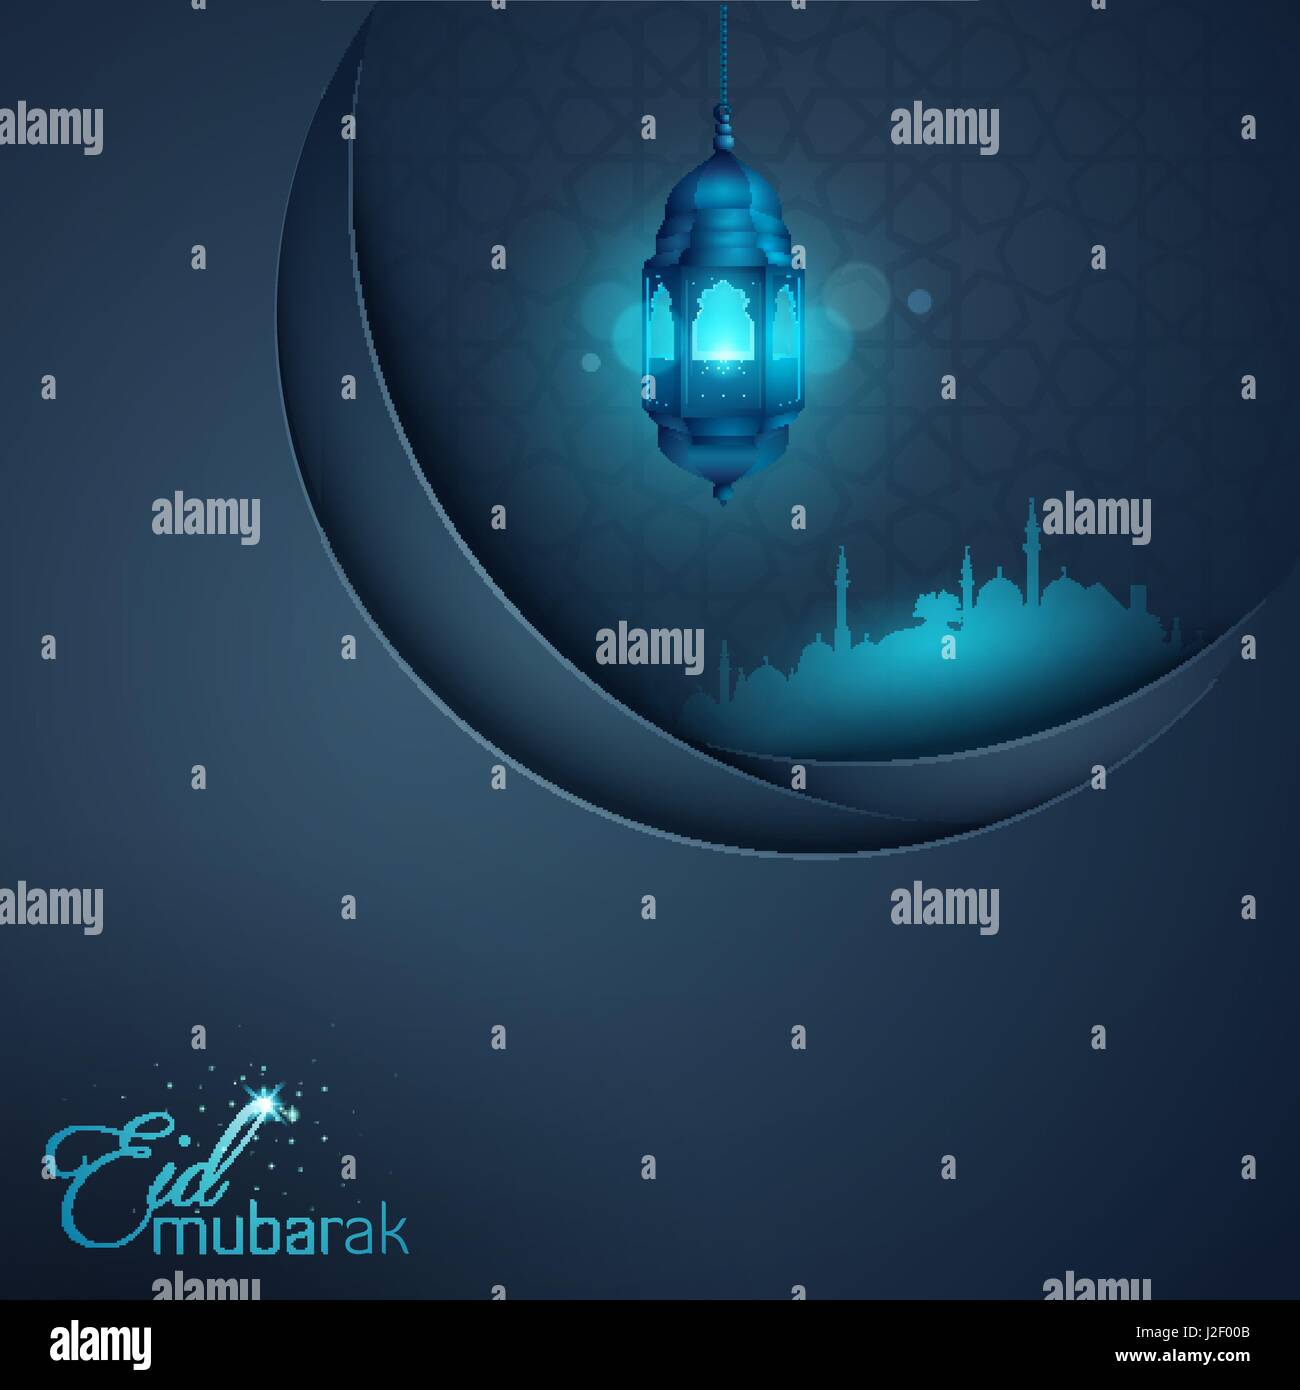 Eid Greetings Stock Photos Eid Greetings Stock Images Page 9 Alamy